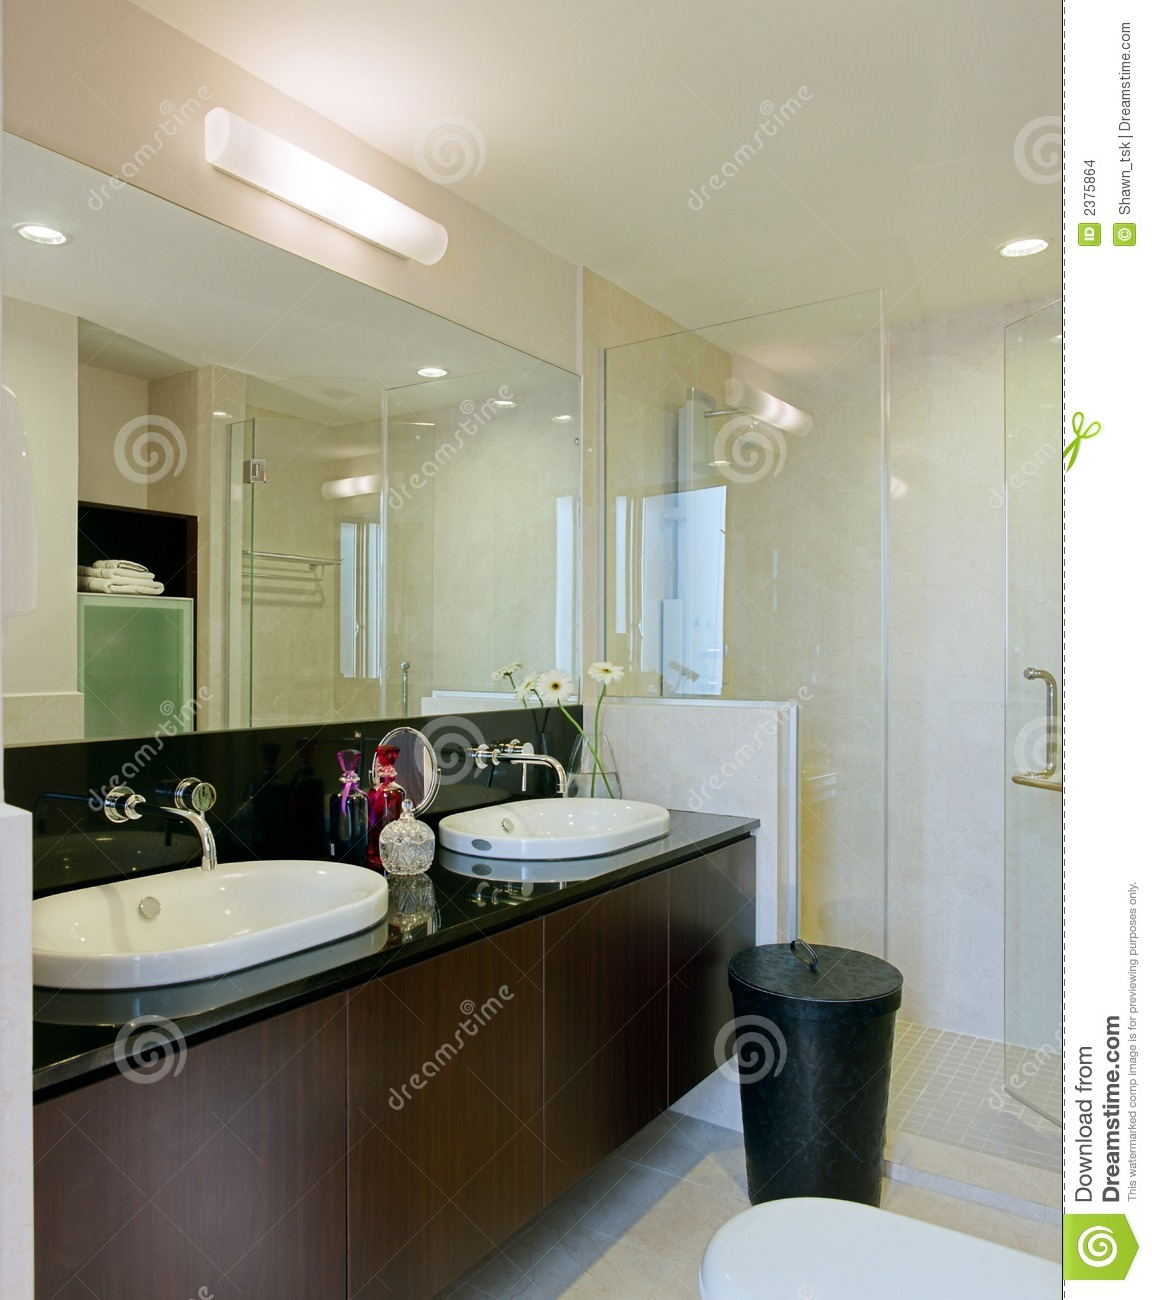 Interior design bathroom stock images image 2375864 for Bathroom interior design photos